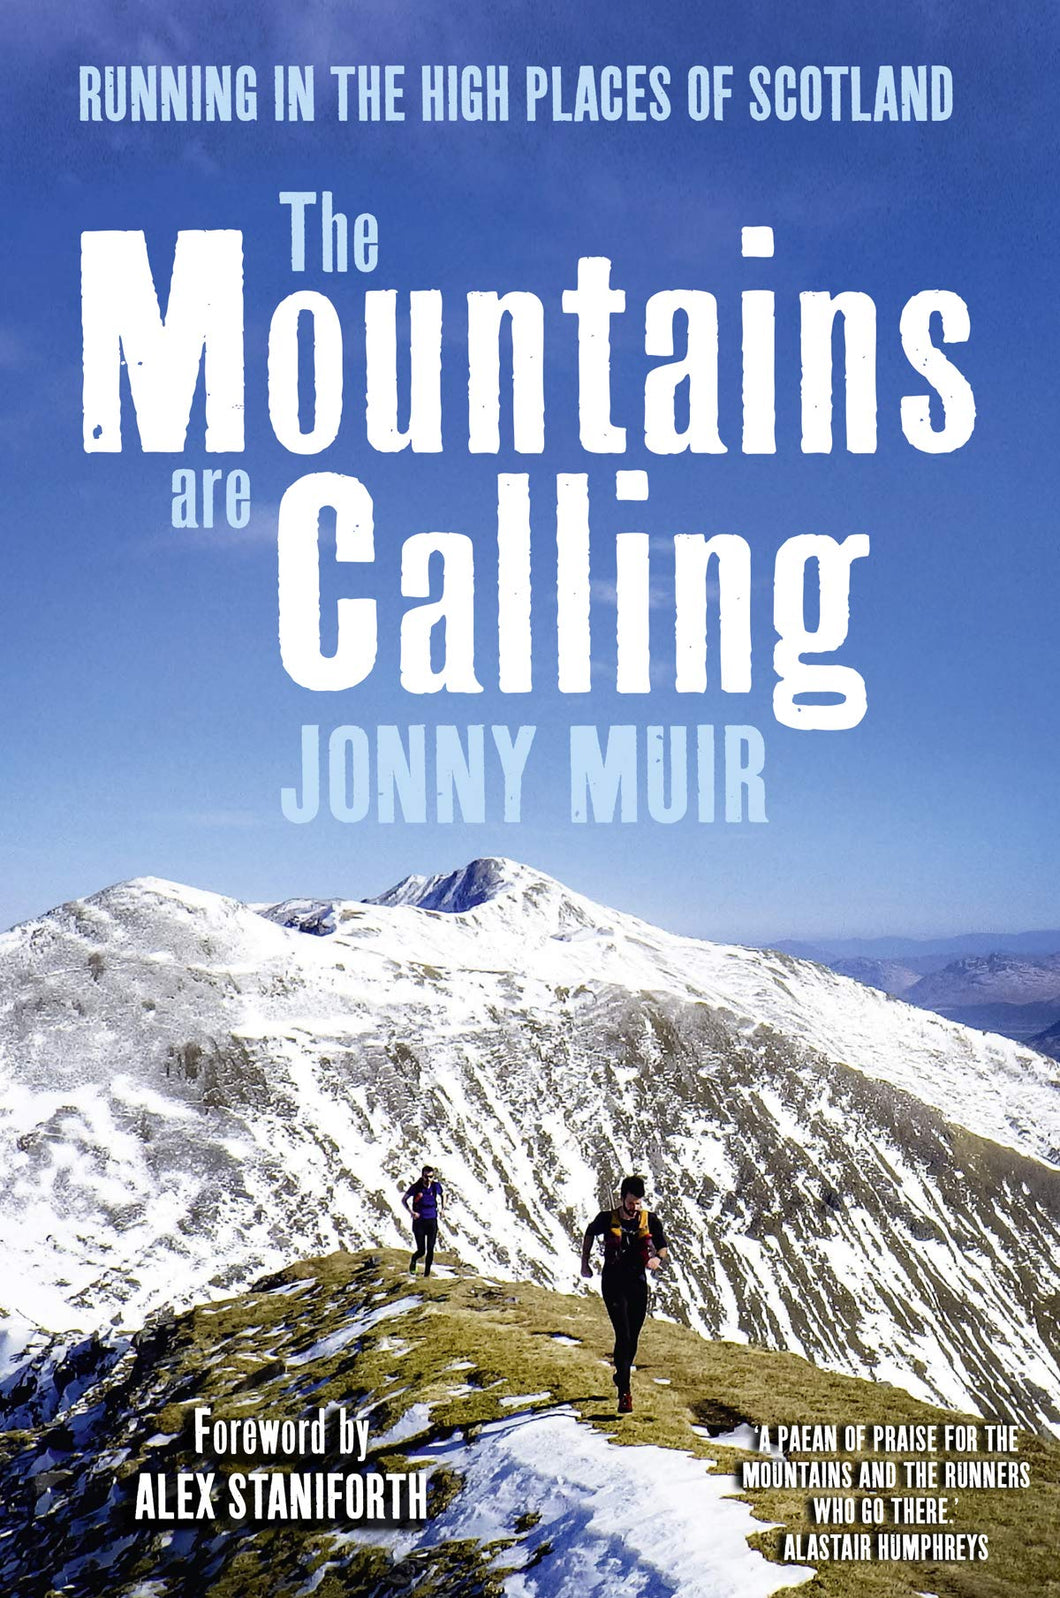 The Mountains are Calling: Running in the High Places of Scotland (paperback)